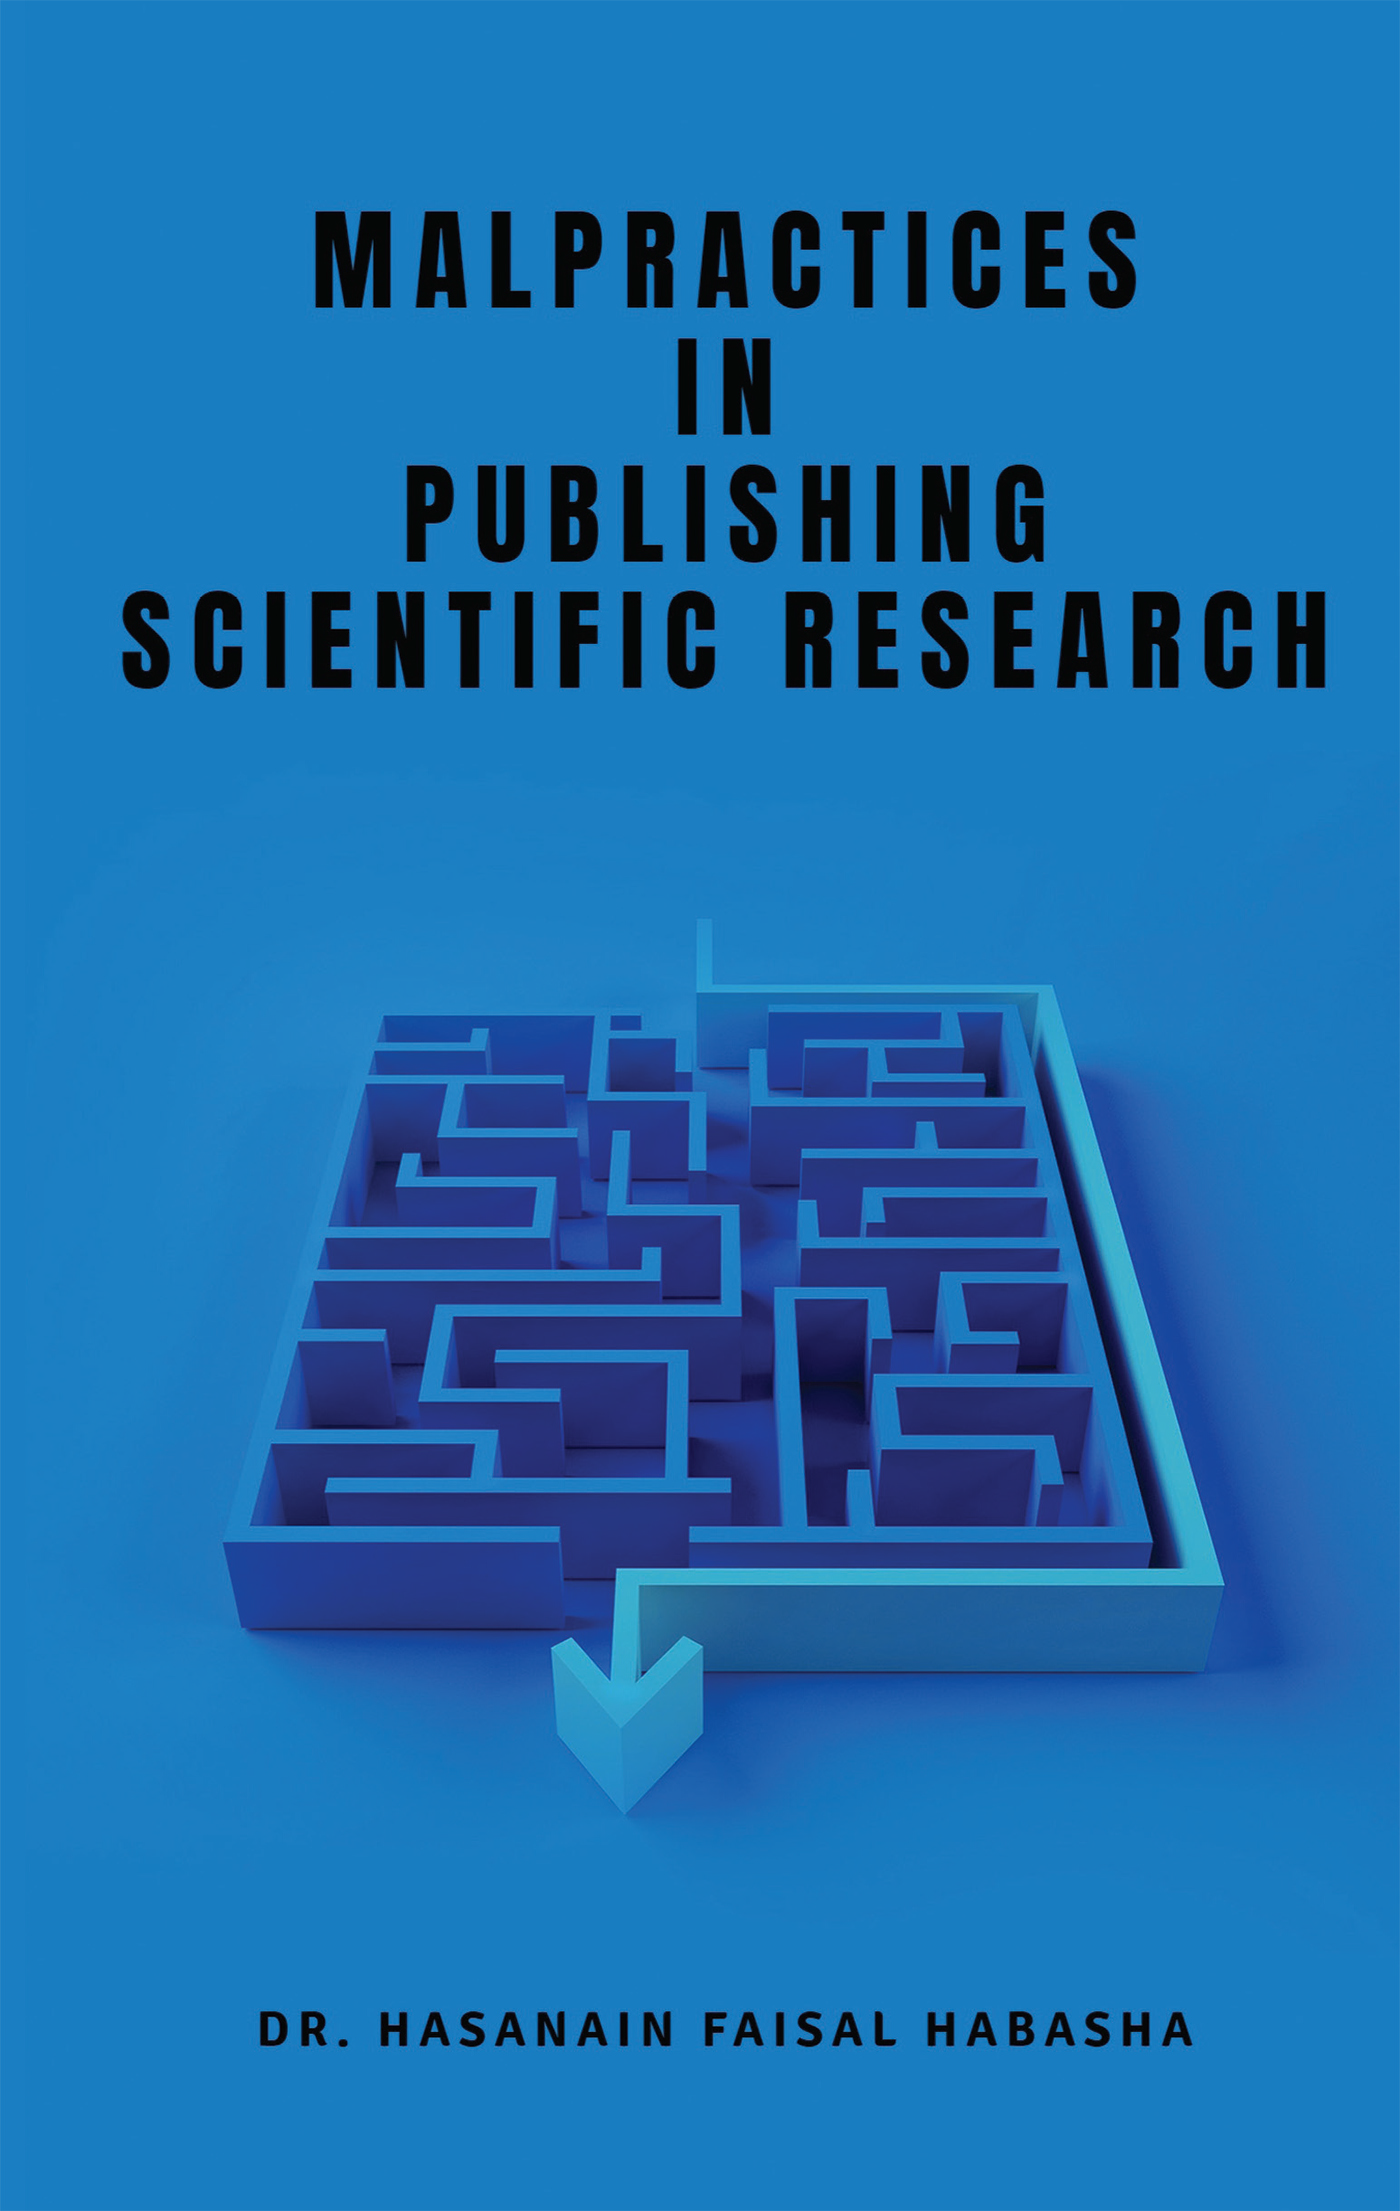 MALPRACTICES IN PUBLISHING SCIENTIFIC RESEARCH